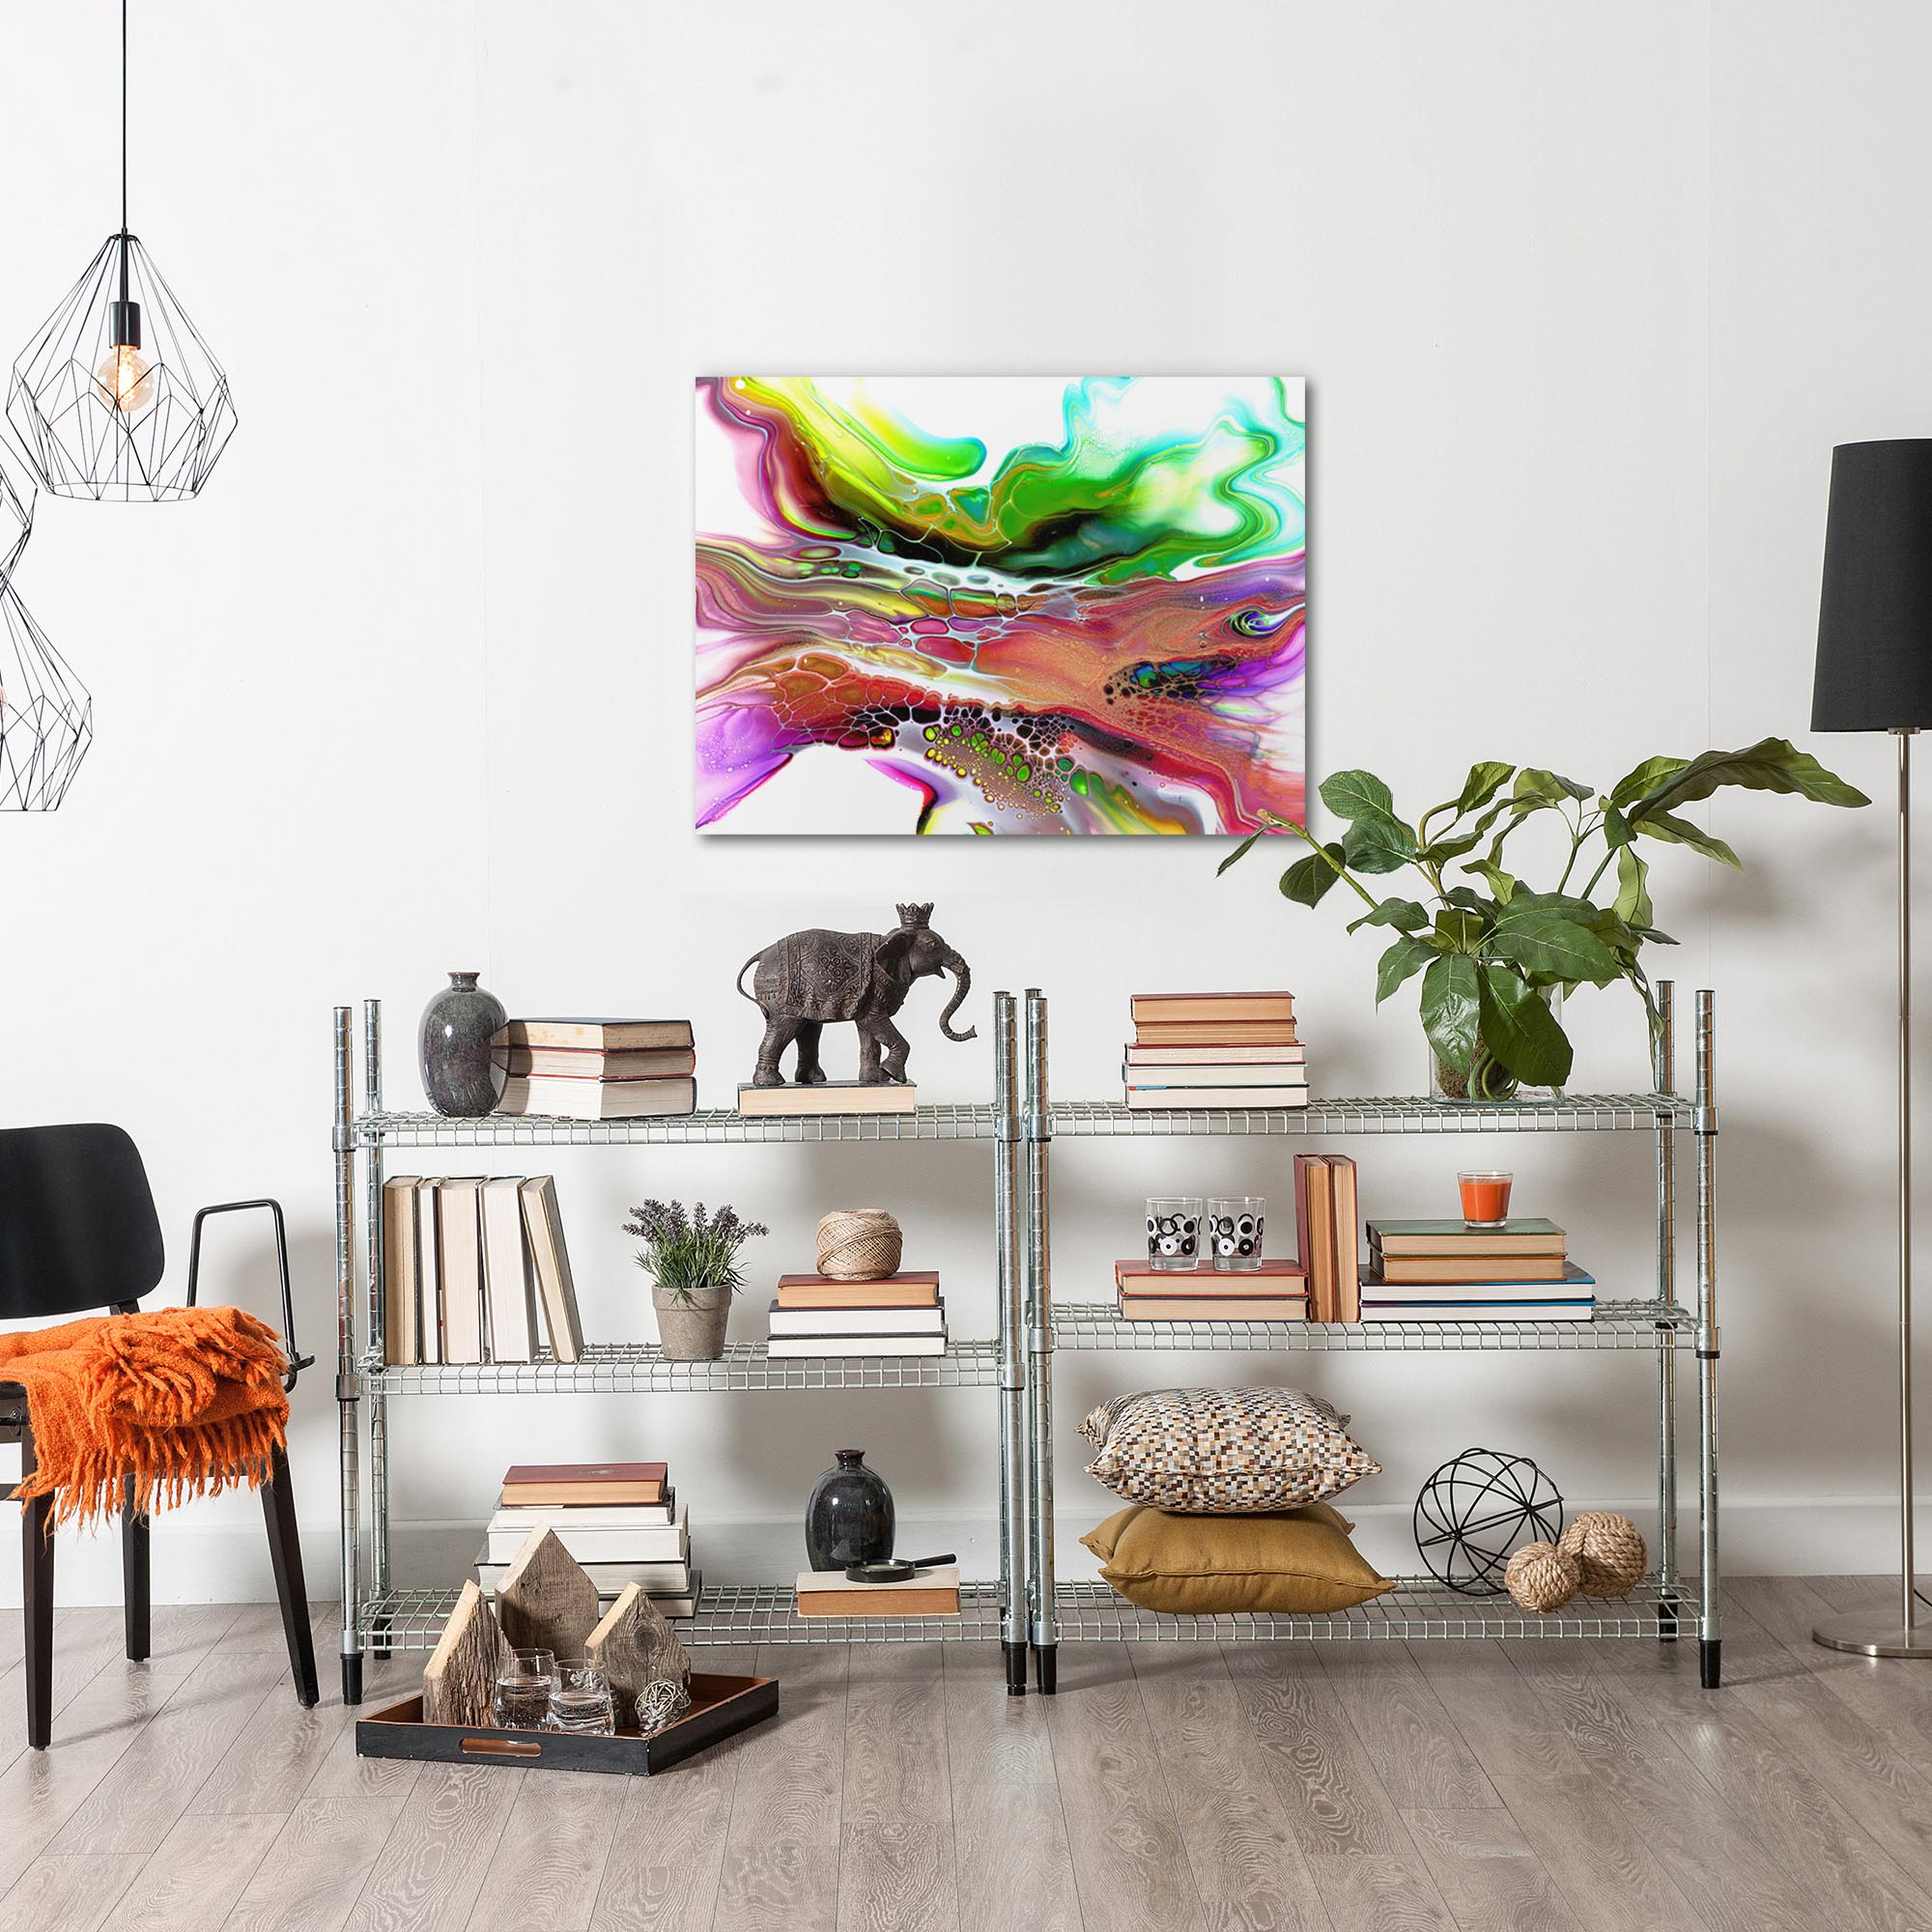 Compression by Elana Reiter - Abstract Wall Art, Modern Home Decor (32in x 24in) - Image 3